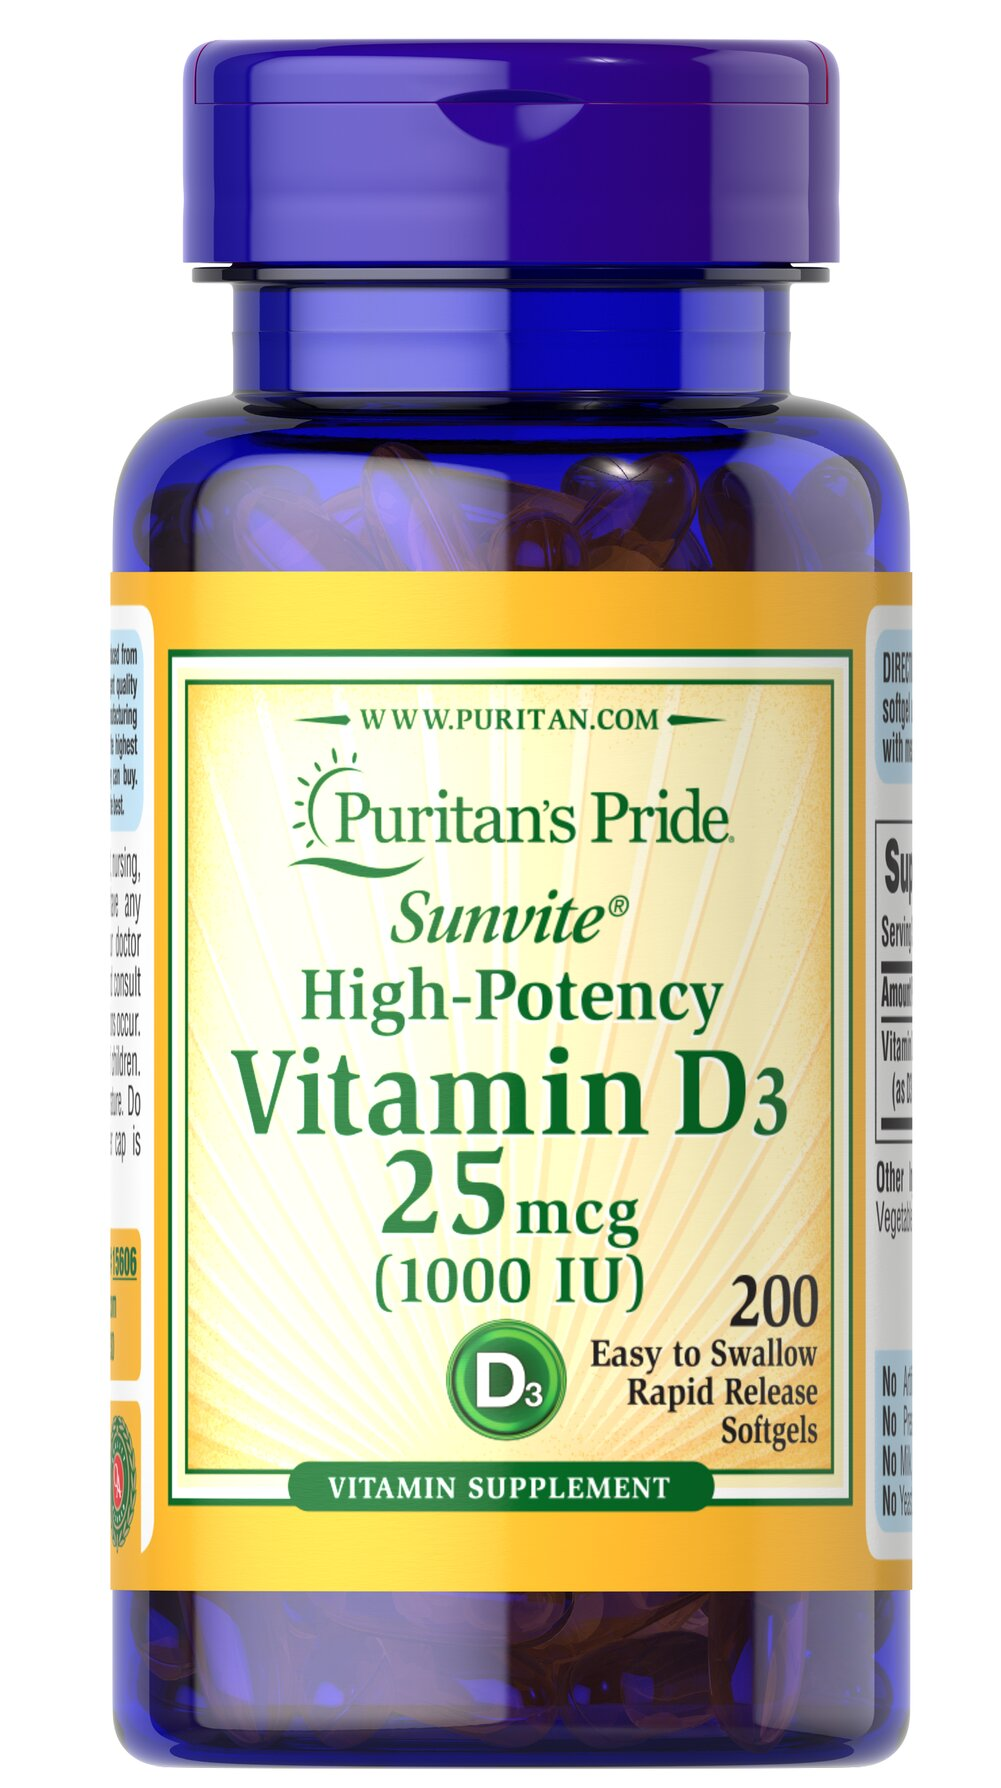 Vitamin D3 25mcg (1000 IU) Thumbnail Alternate Bottle View